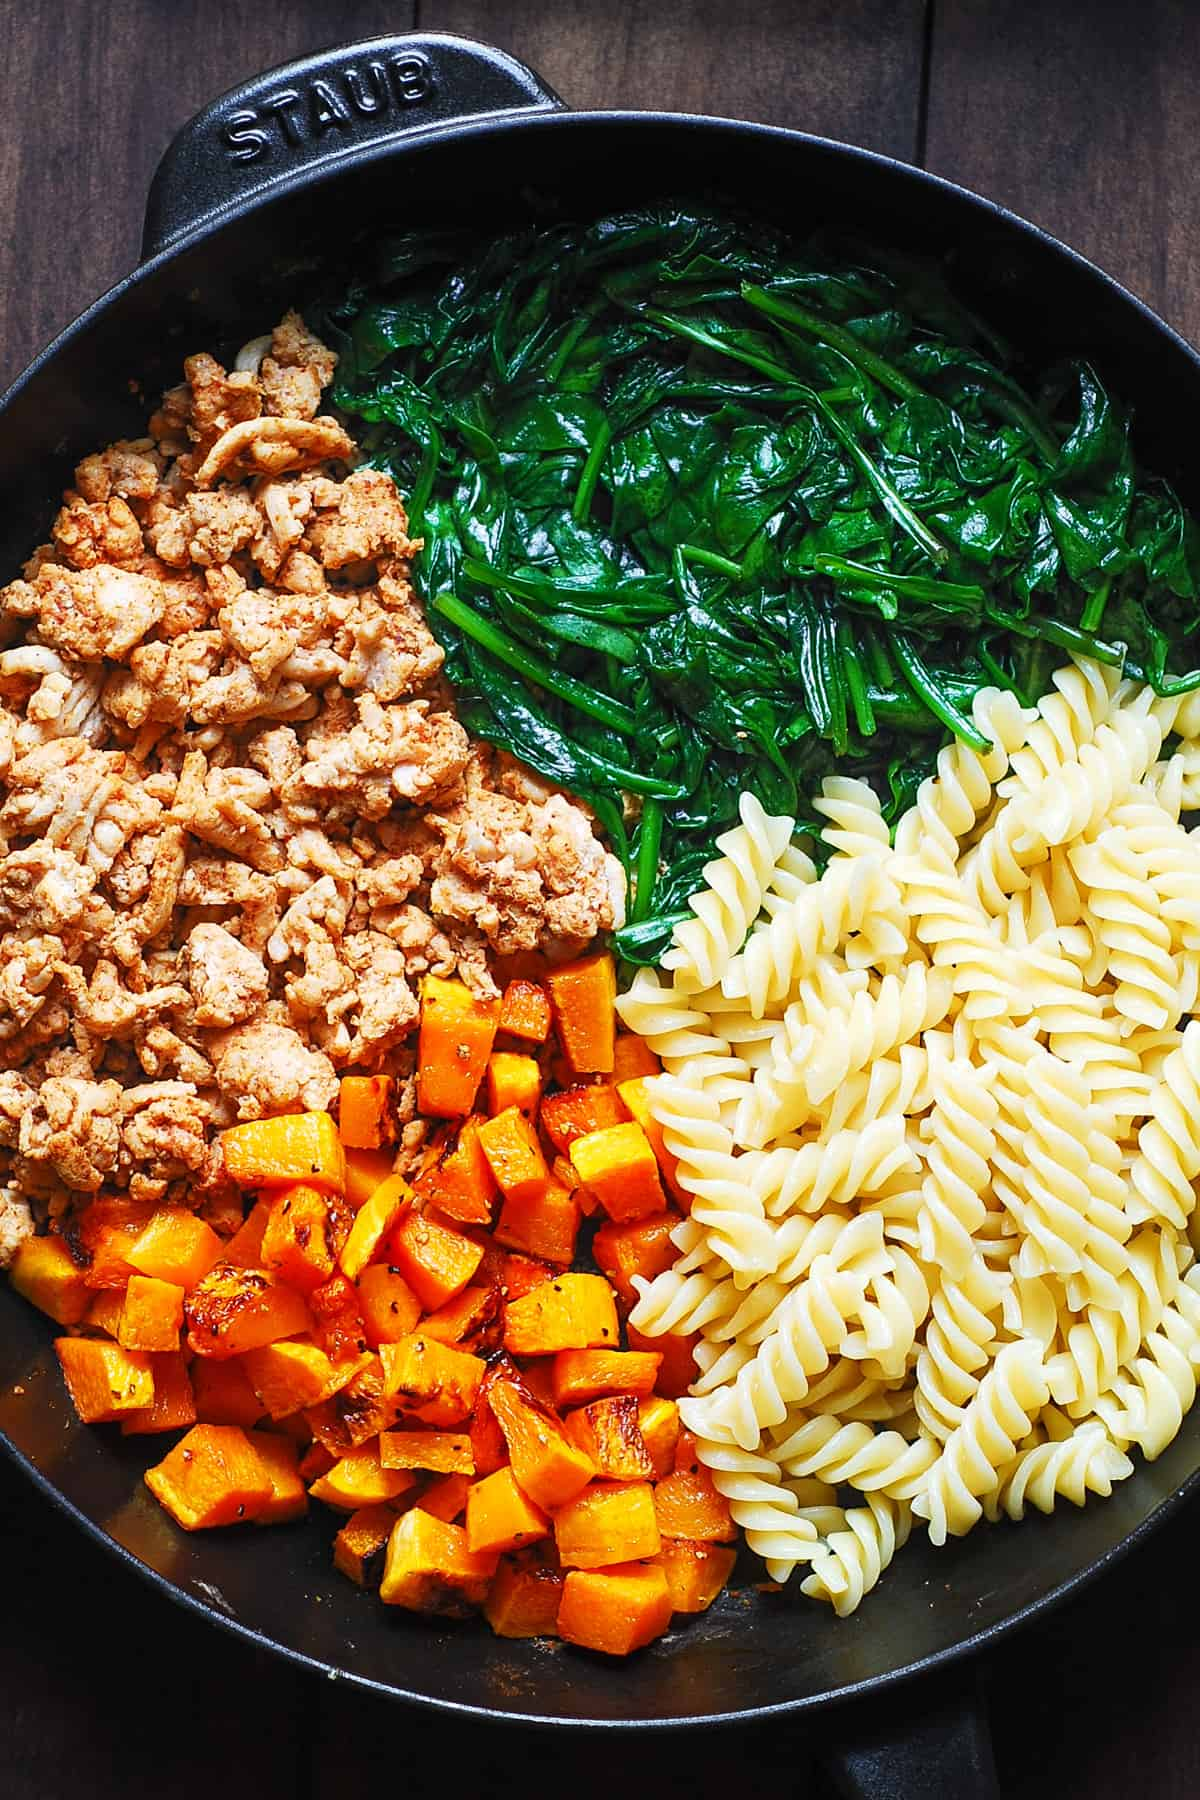 Ingredients for pasta in a cast-iron skillet: cooked ground turkey, cooked spinach, cooked pasta, roasted butternut squash